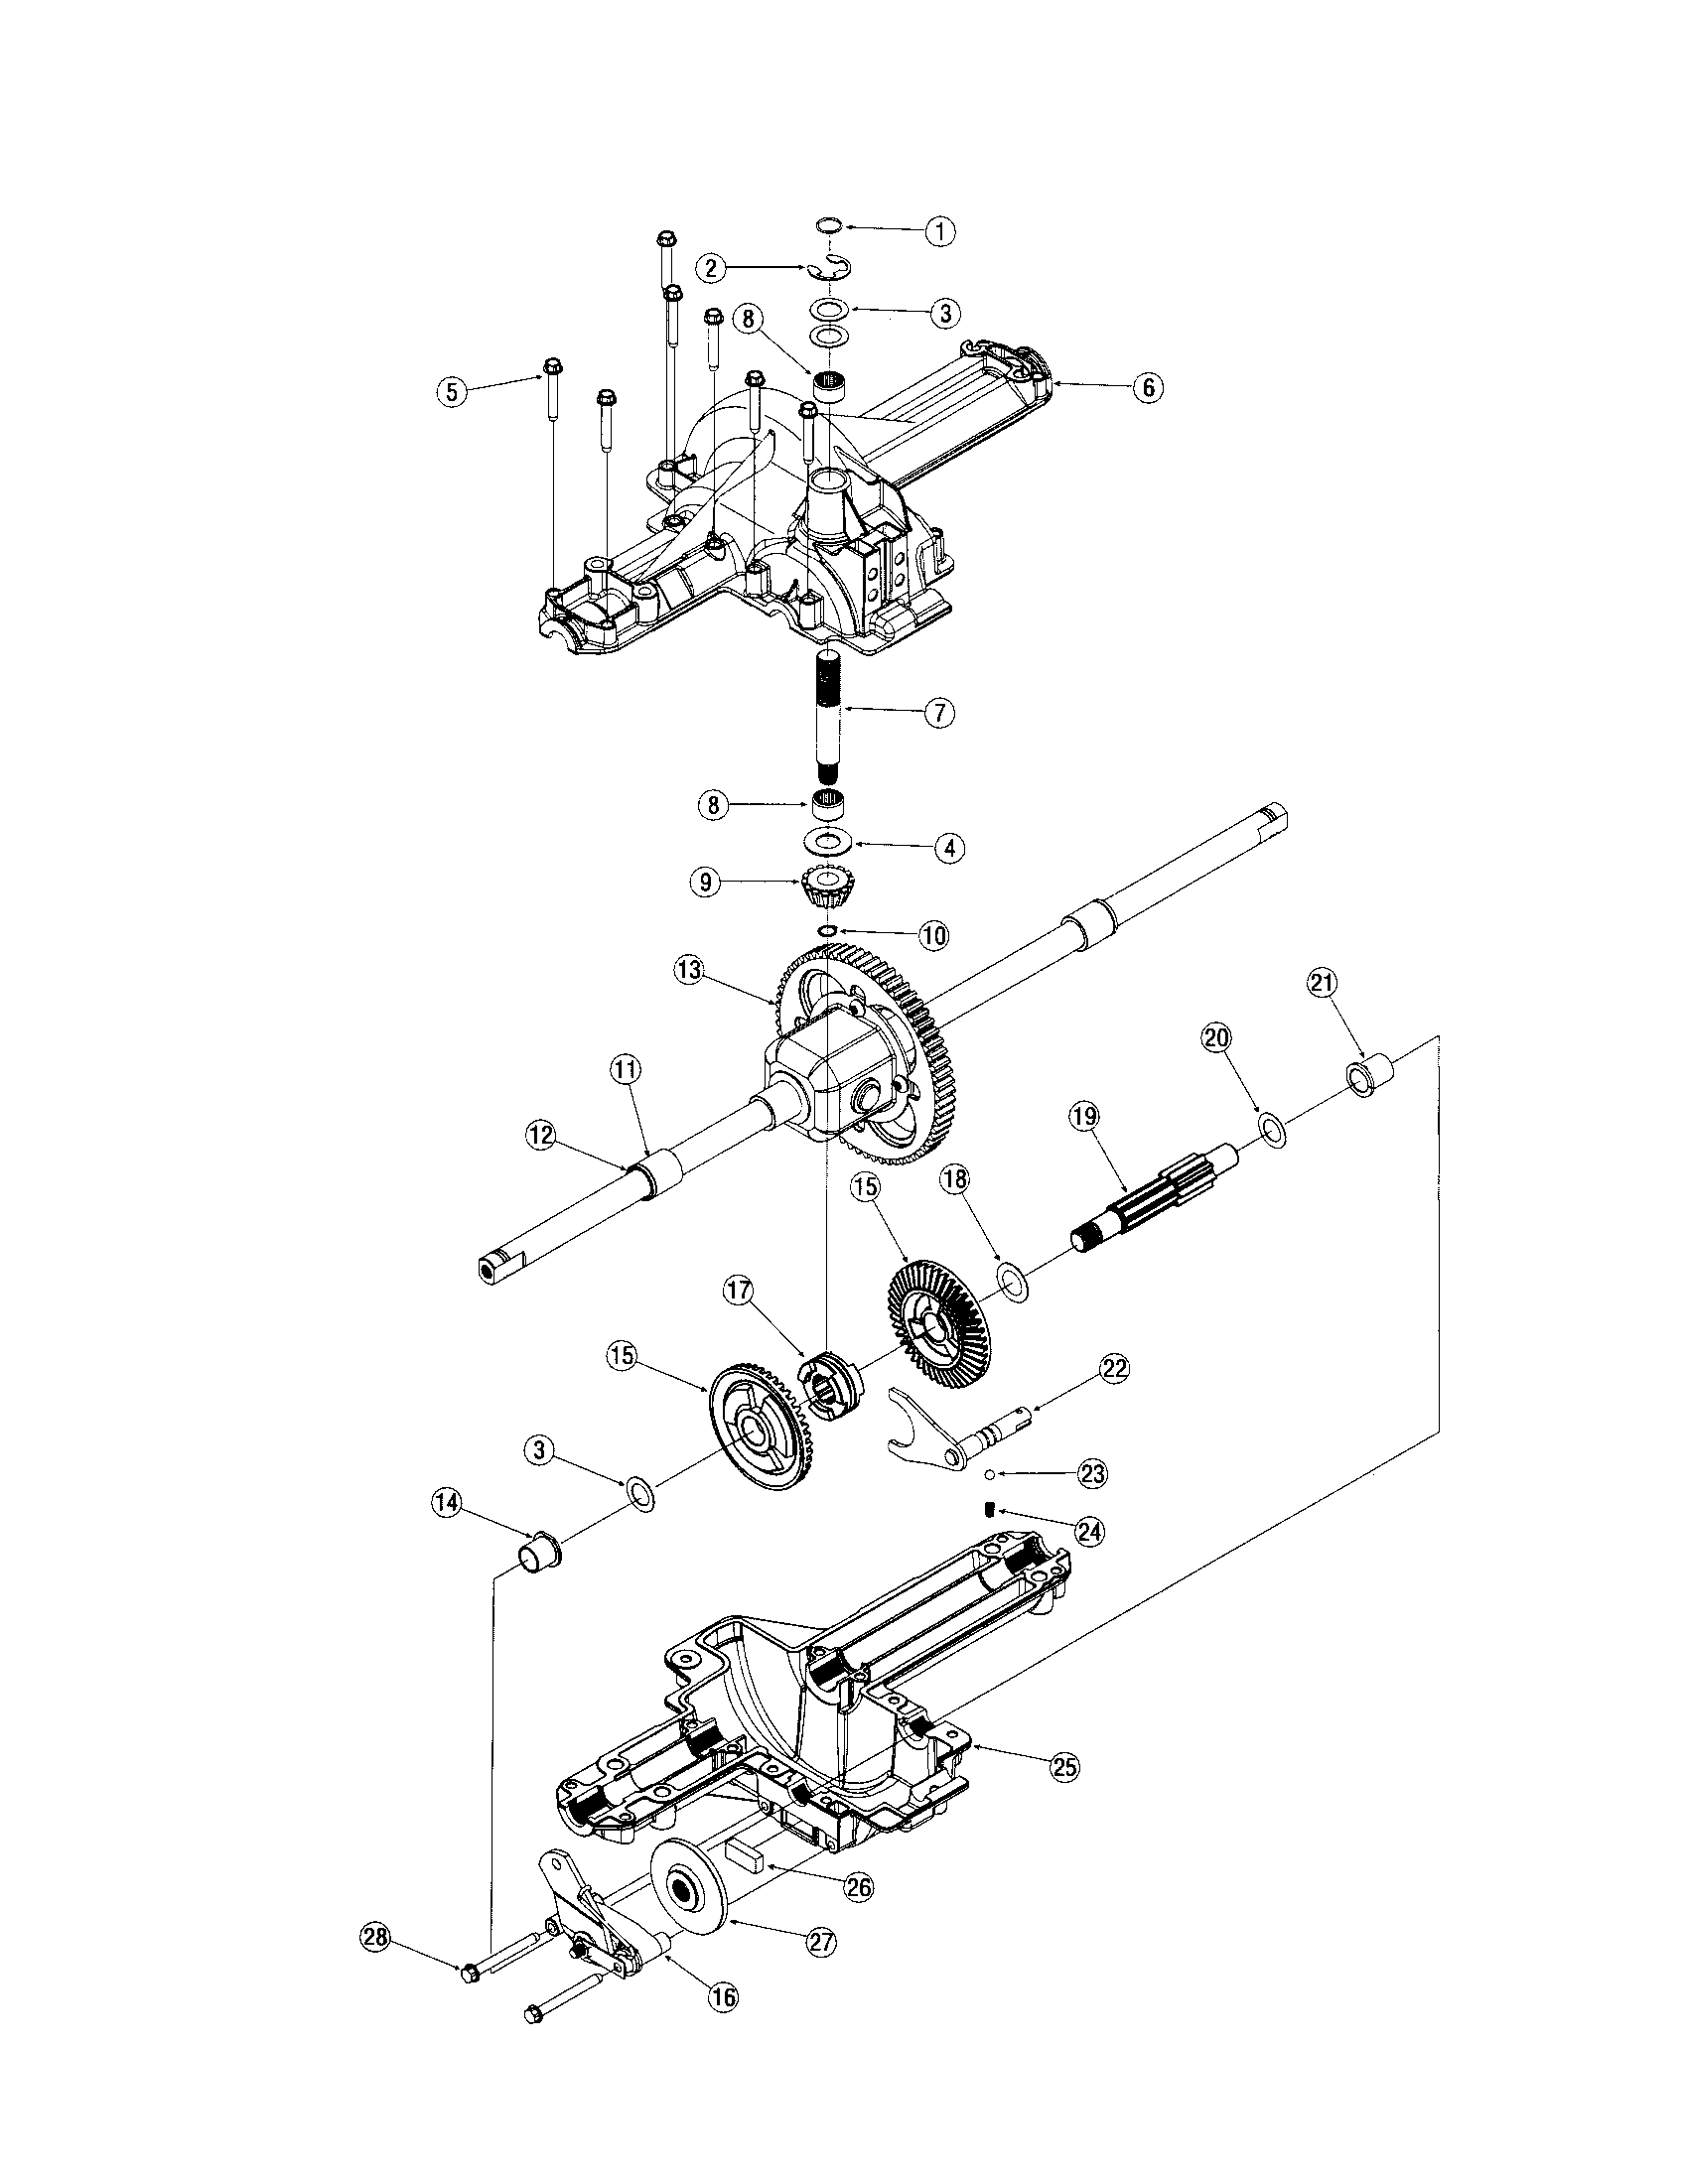 DIFFERENTIAL Diagram & Parts List for Model lx420 Toro